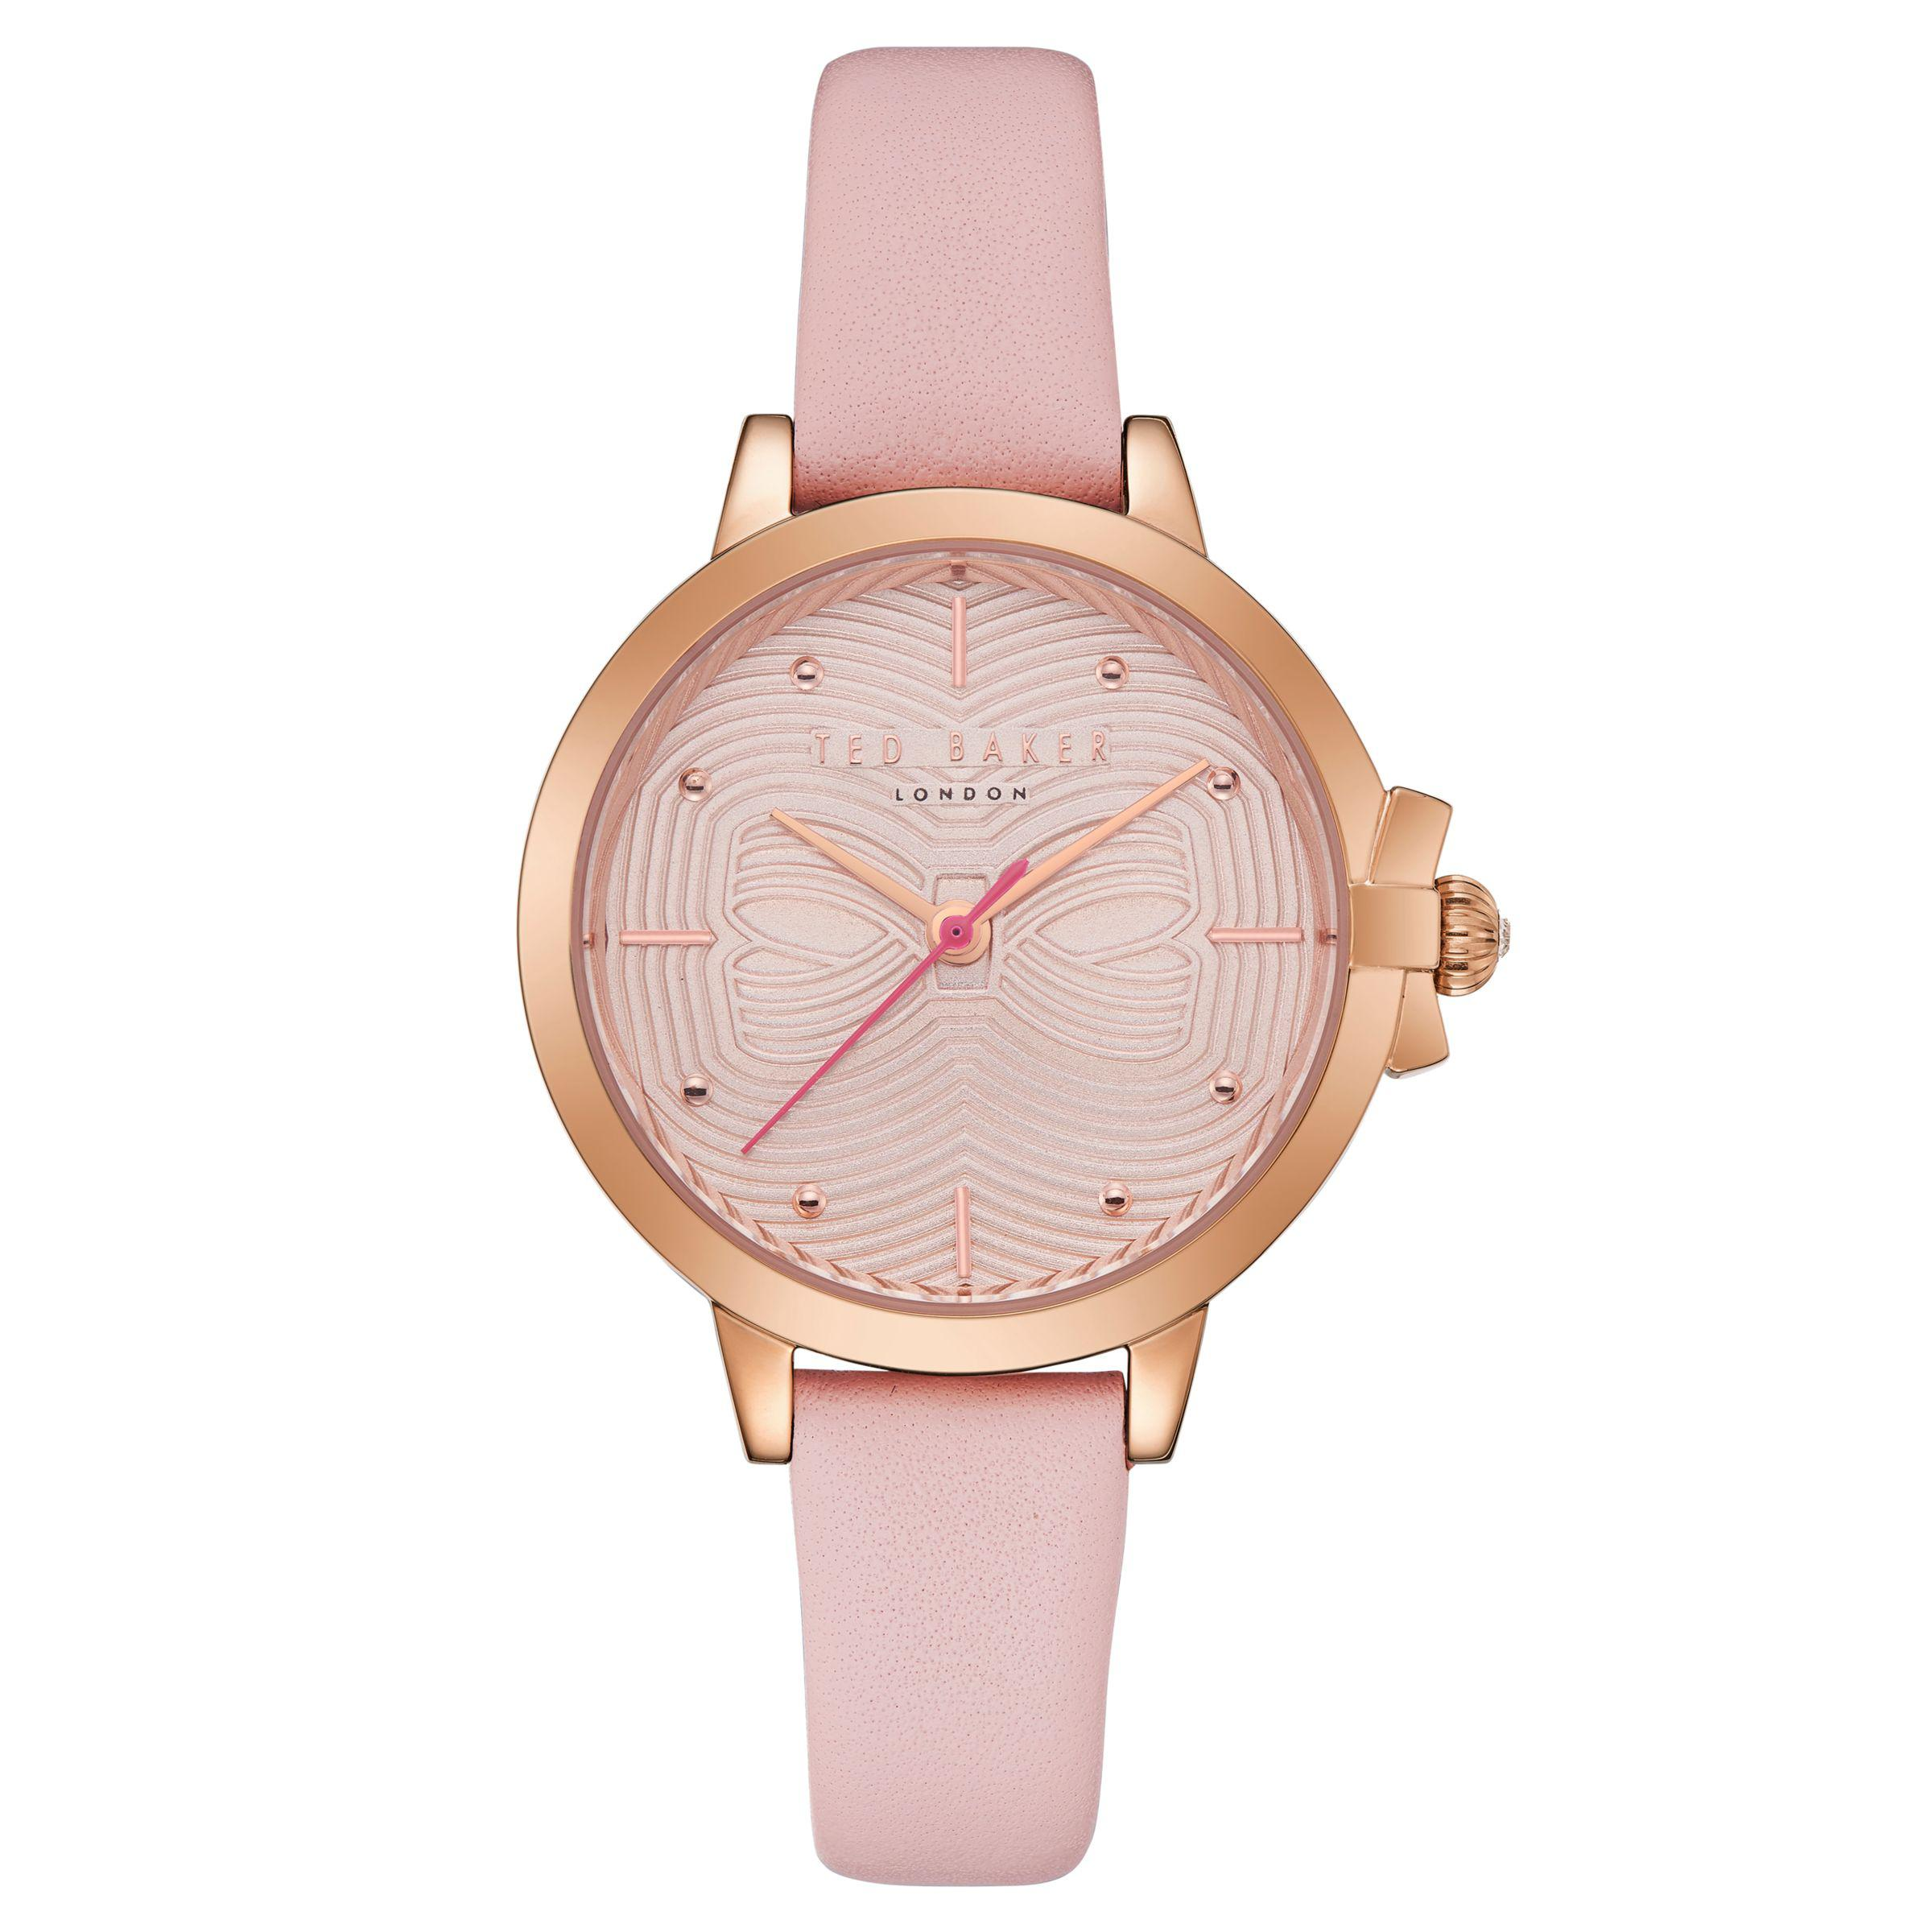 1bf6ff9b9 Ted Baker Women s Beth Bow Dial Leather Strap Watch in Pink - Lyst